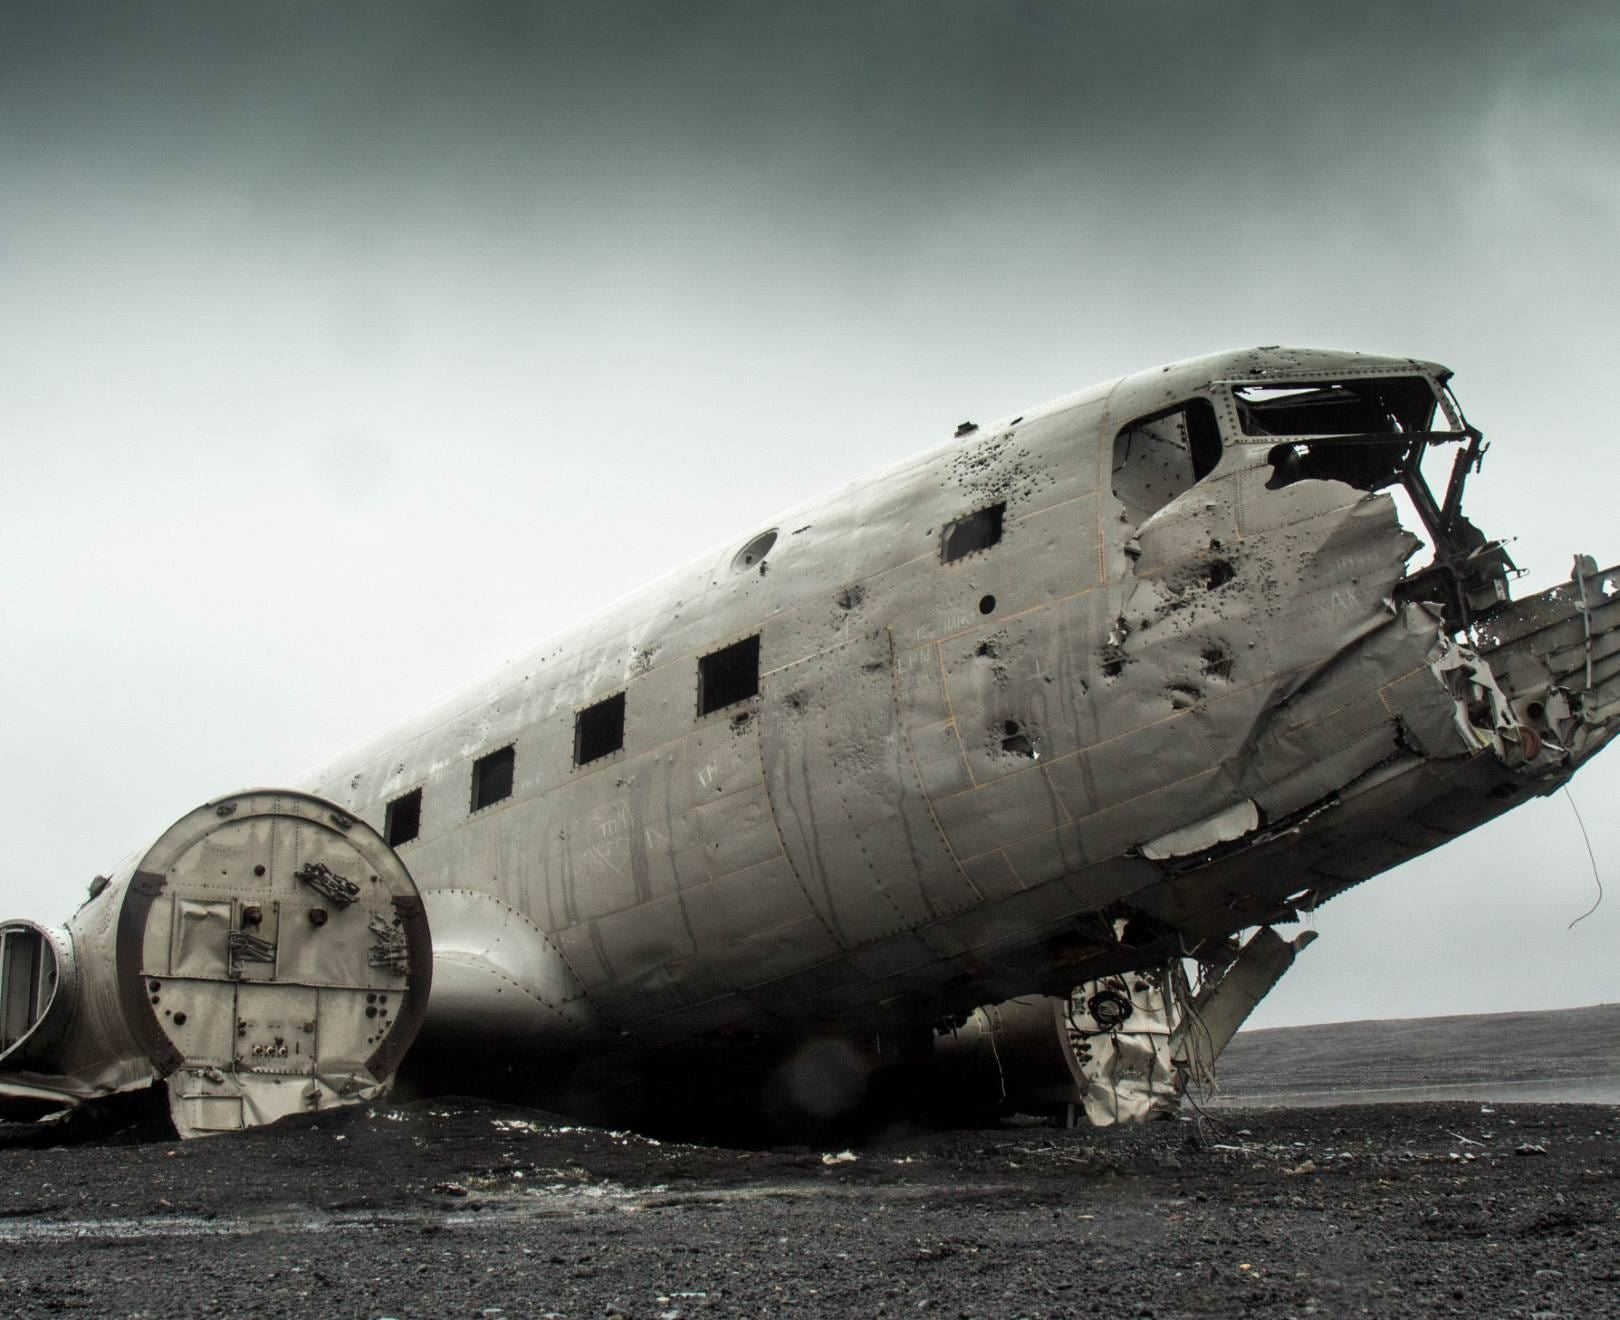 Crashed Aeroplane